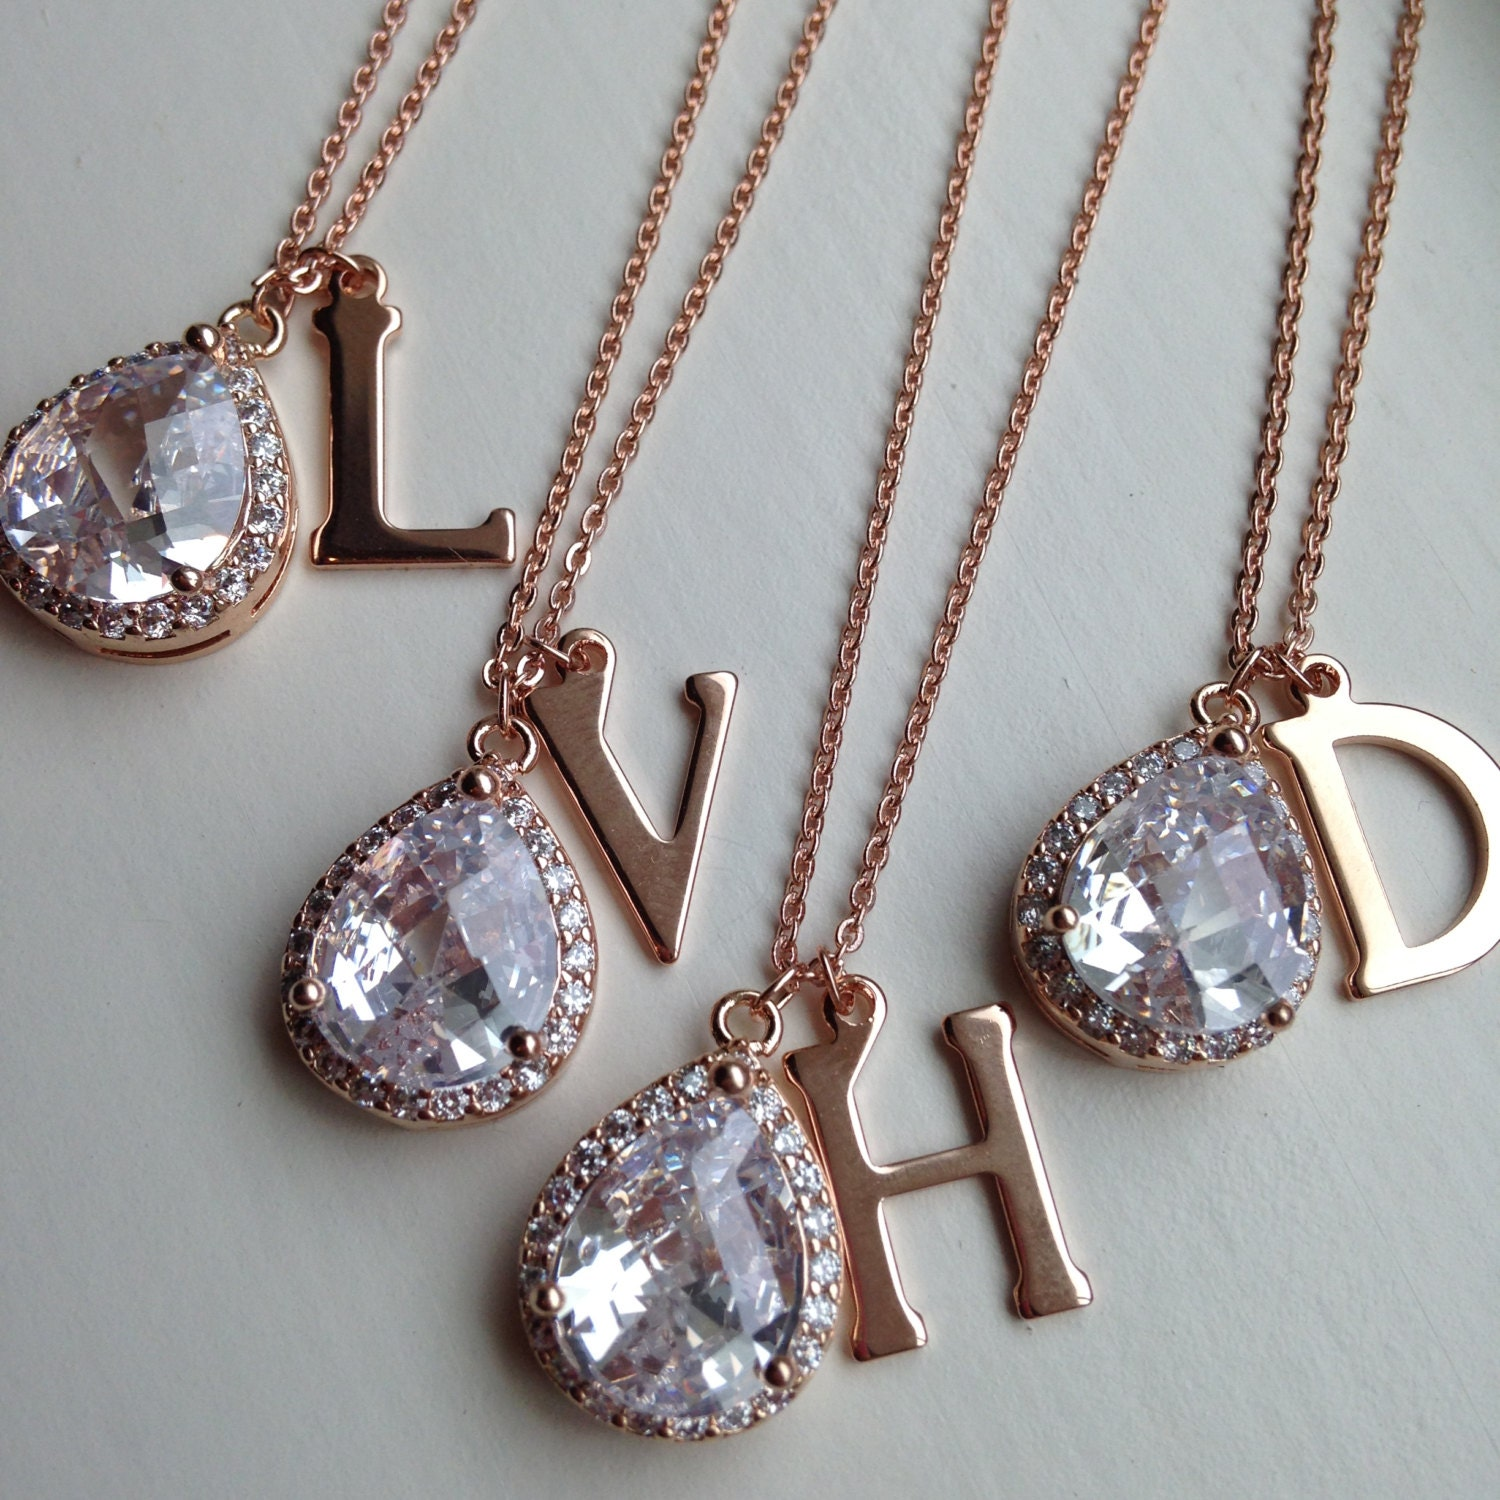 Large Rose Gold Initial Necklace - Rose Gold CZ Jewelry - Clear Crystal Necklace - Bridal Jewelry - Bridesmaid Jewelry - Wedding Necklace